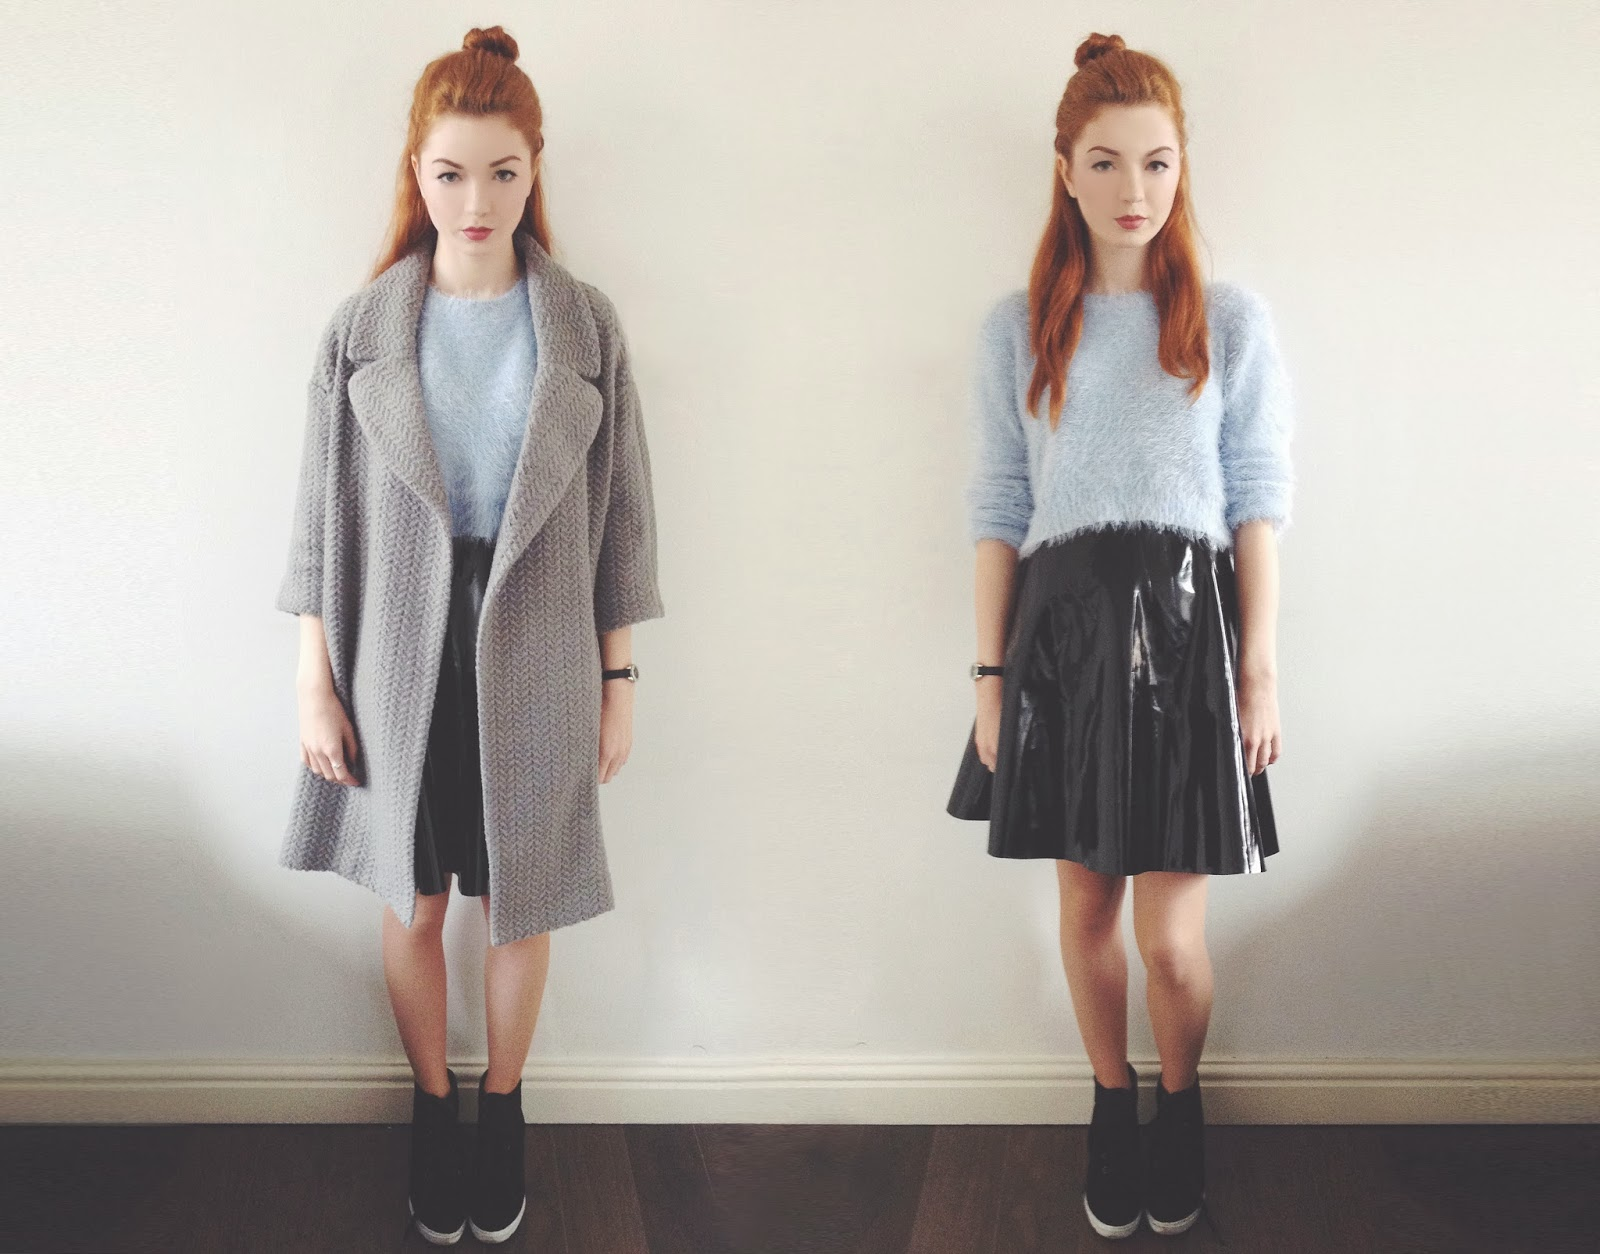 f03cc4da4 Coat – ASOS | Jumper – Missguided* | Skirt – Missguided* | Boots –  Missguided* (similar here)